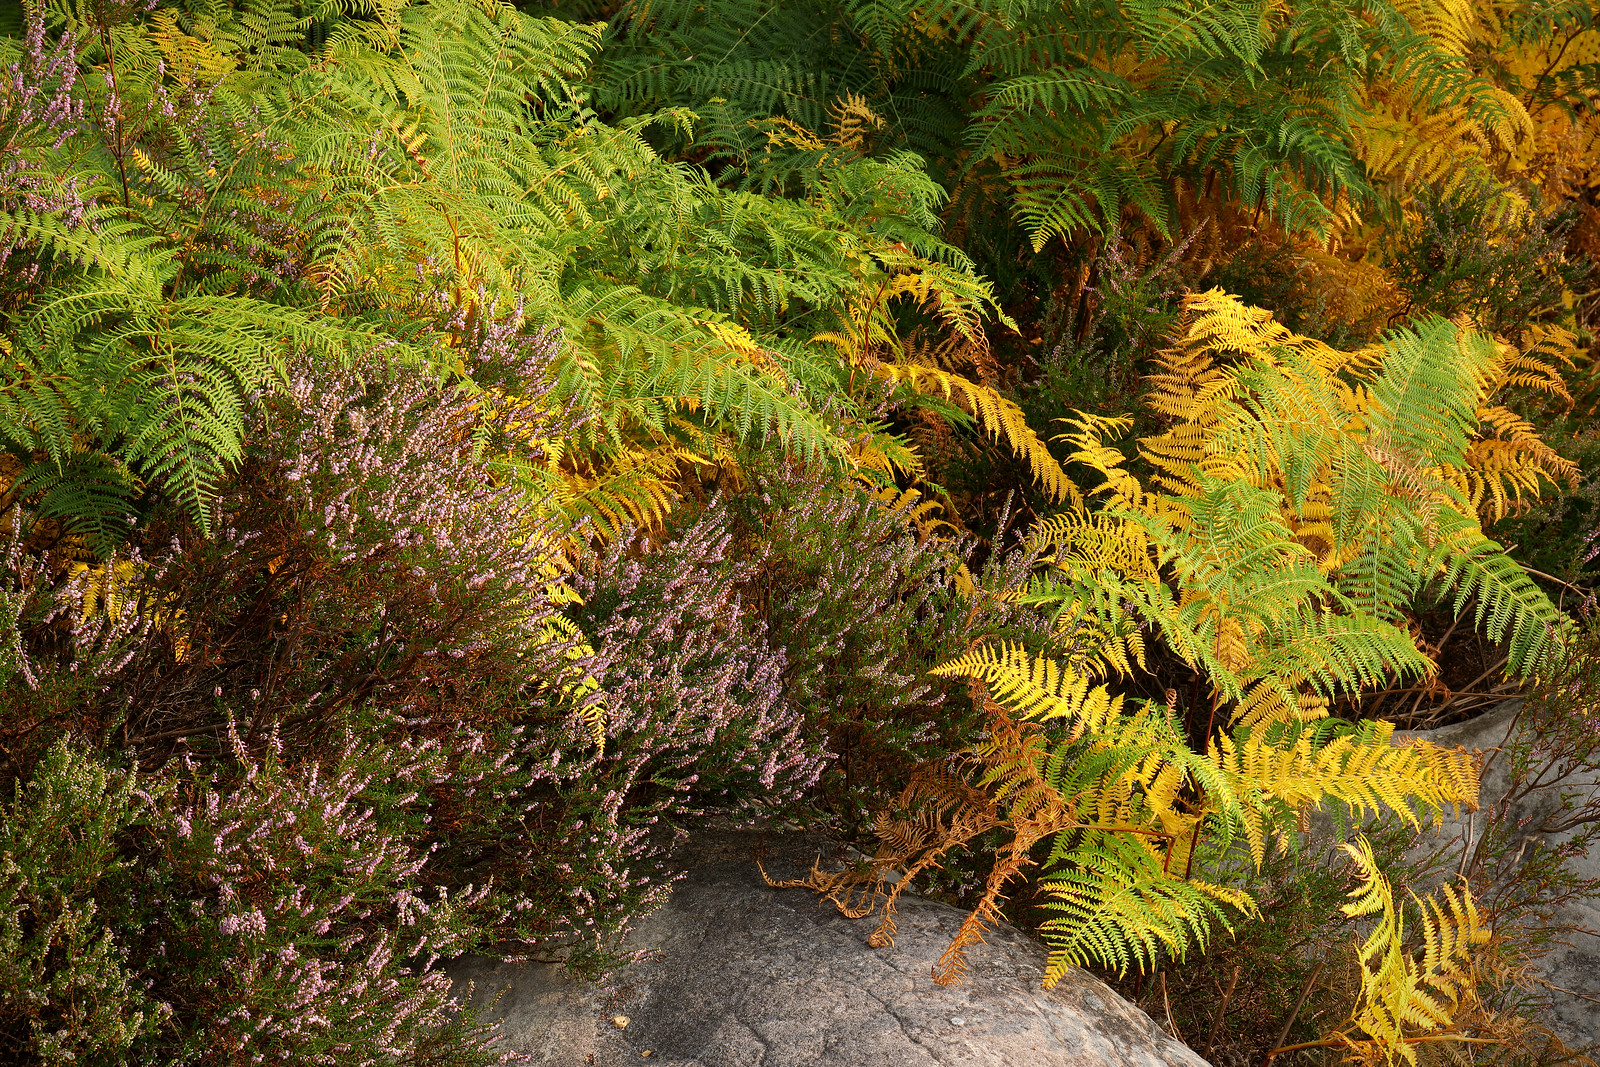 Effects of drought and heat on heather and ferns